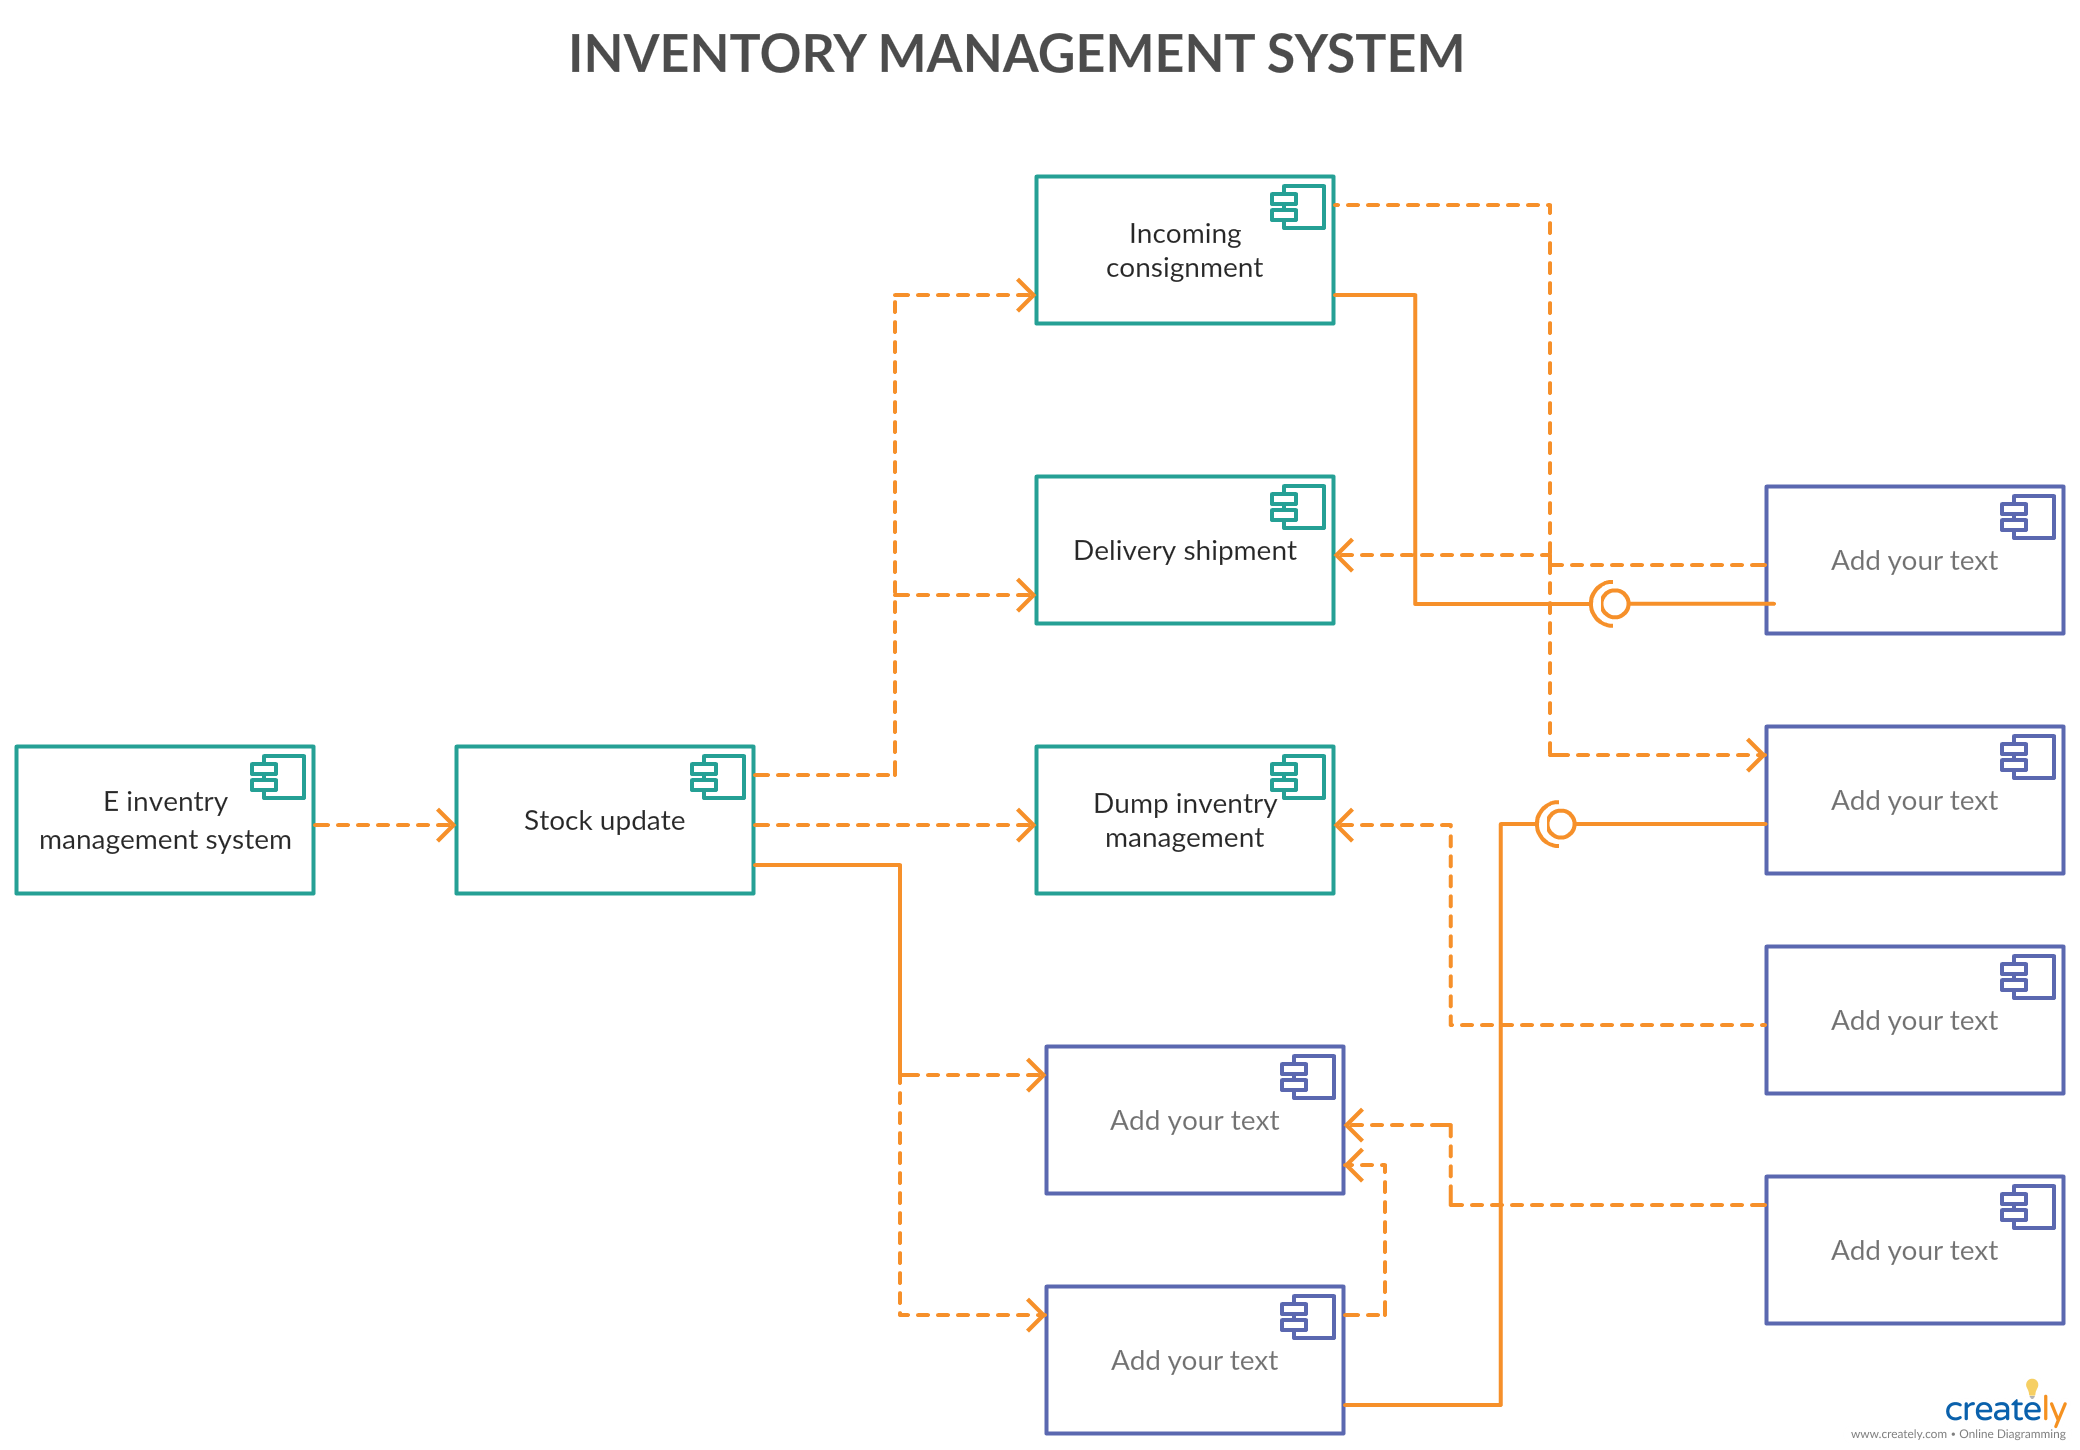 Component Diagram For Inventory Management System You Can Edit An Example Of Uml Behavioral State Machine A Bank Atm This Template And Create Your Own Creately Diagrams Be Exported Added To